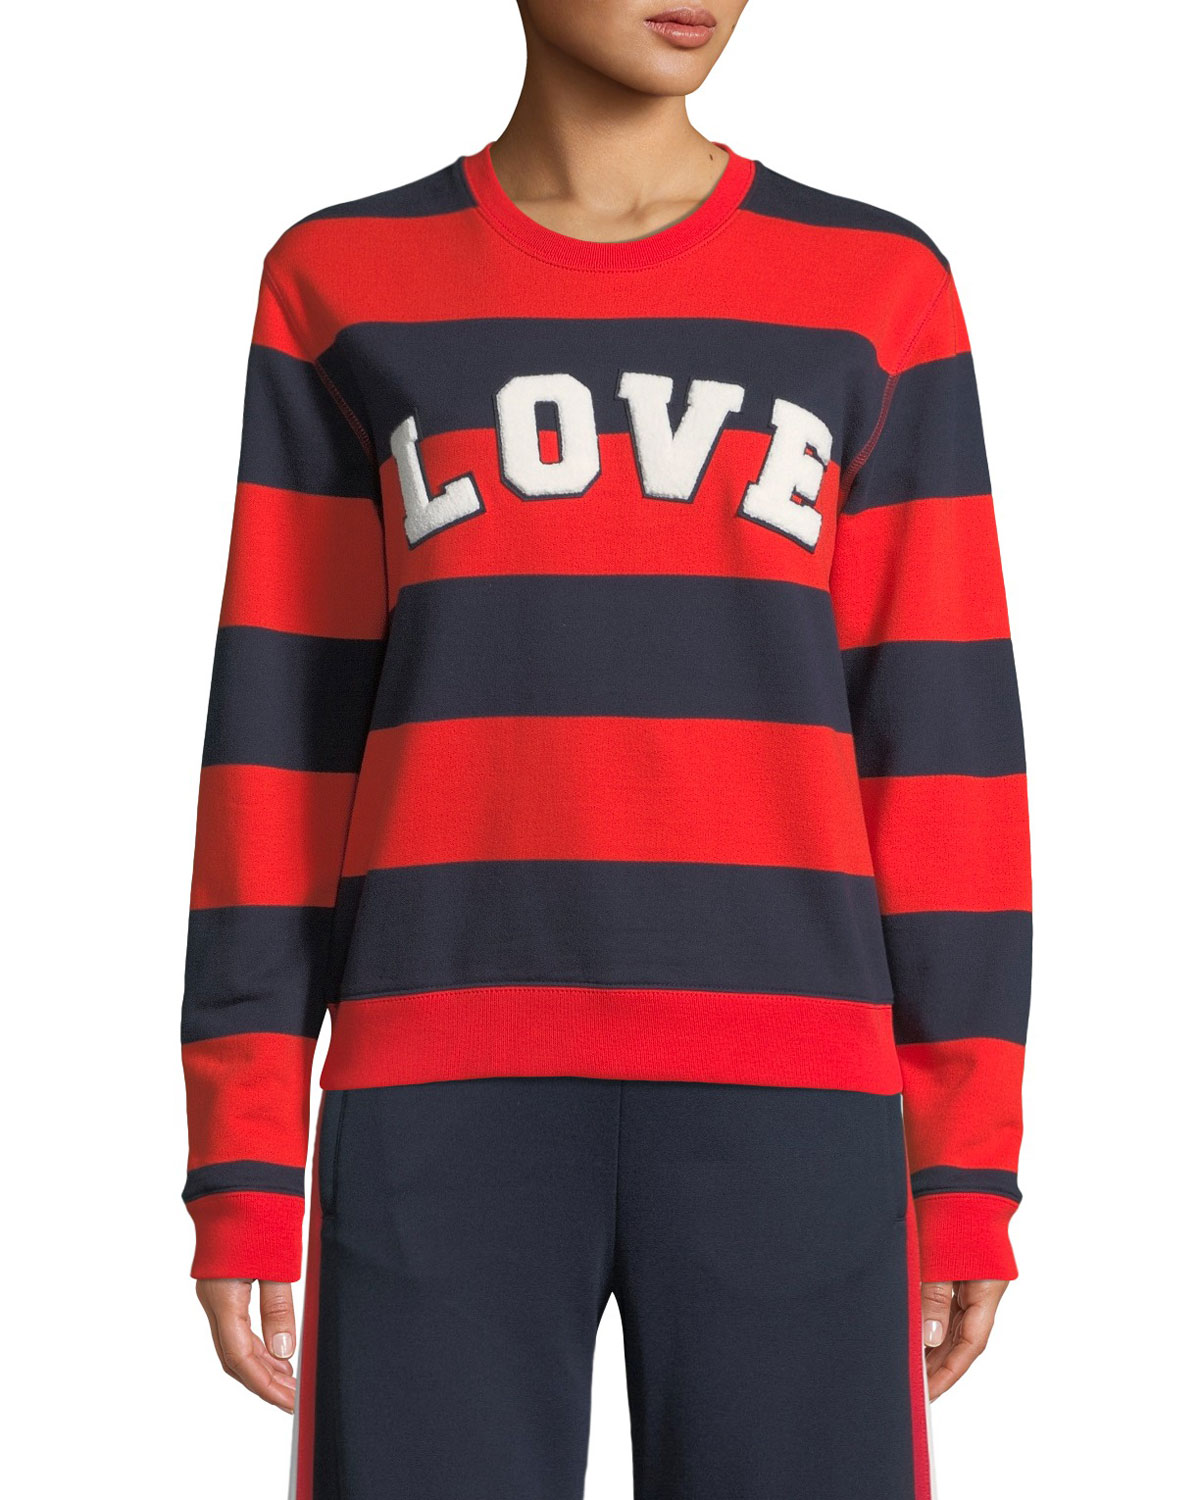 Love Striped Yarn-Dyed Graphic Sweatshirt